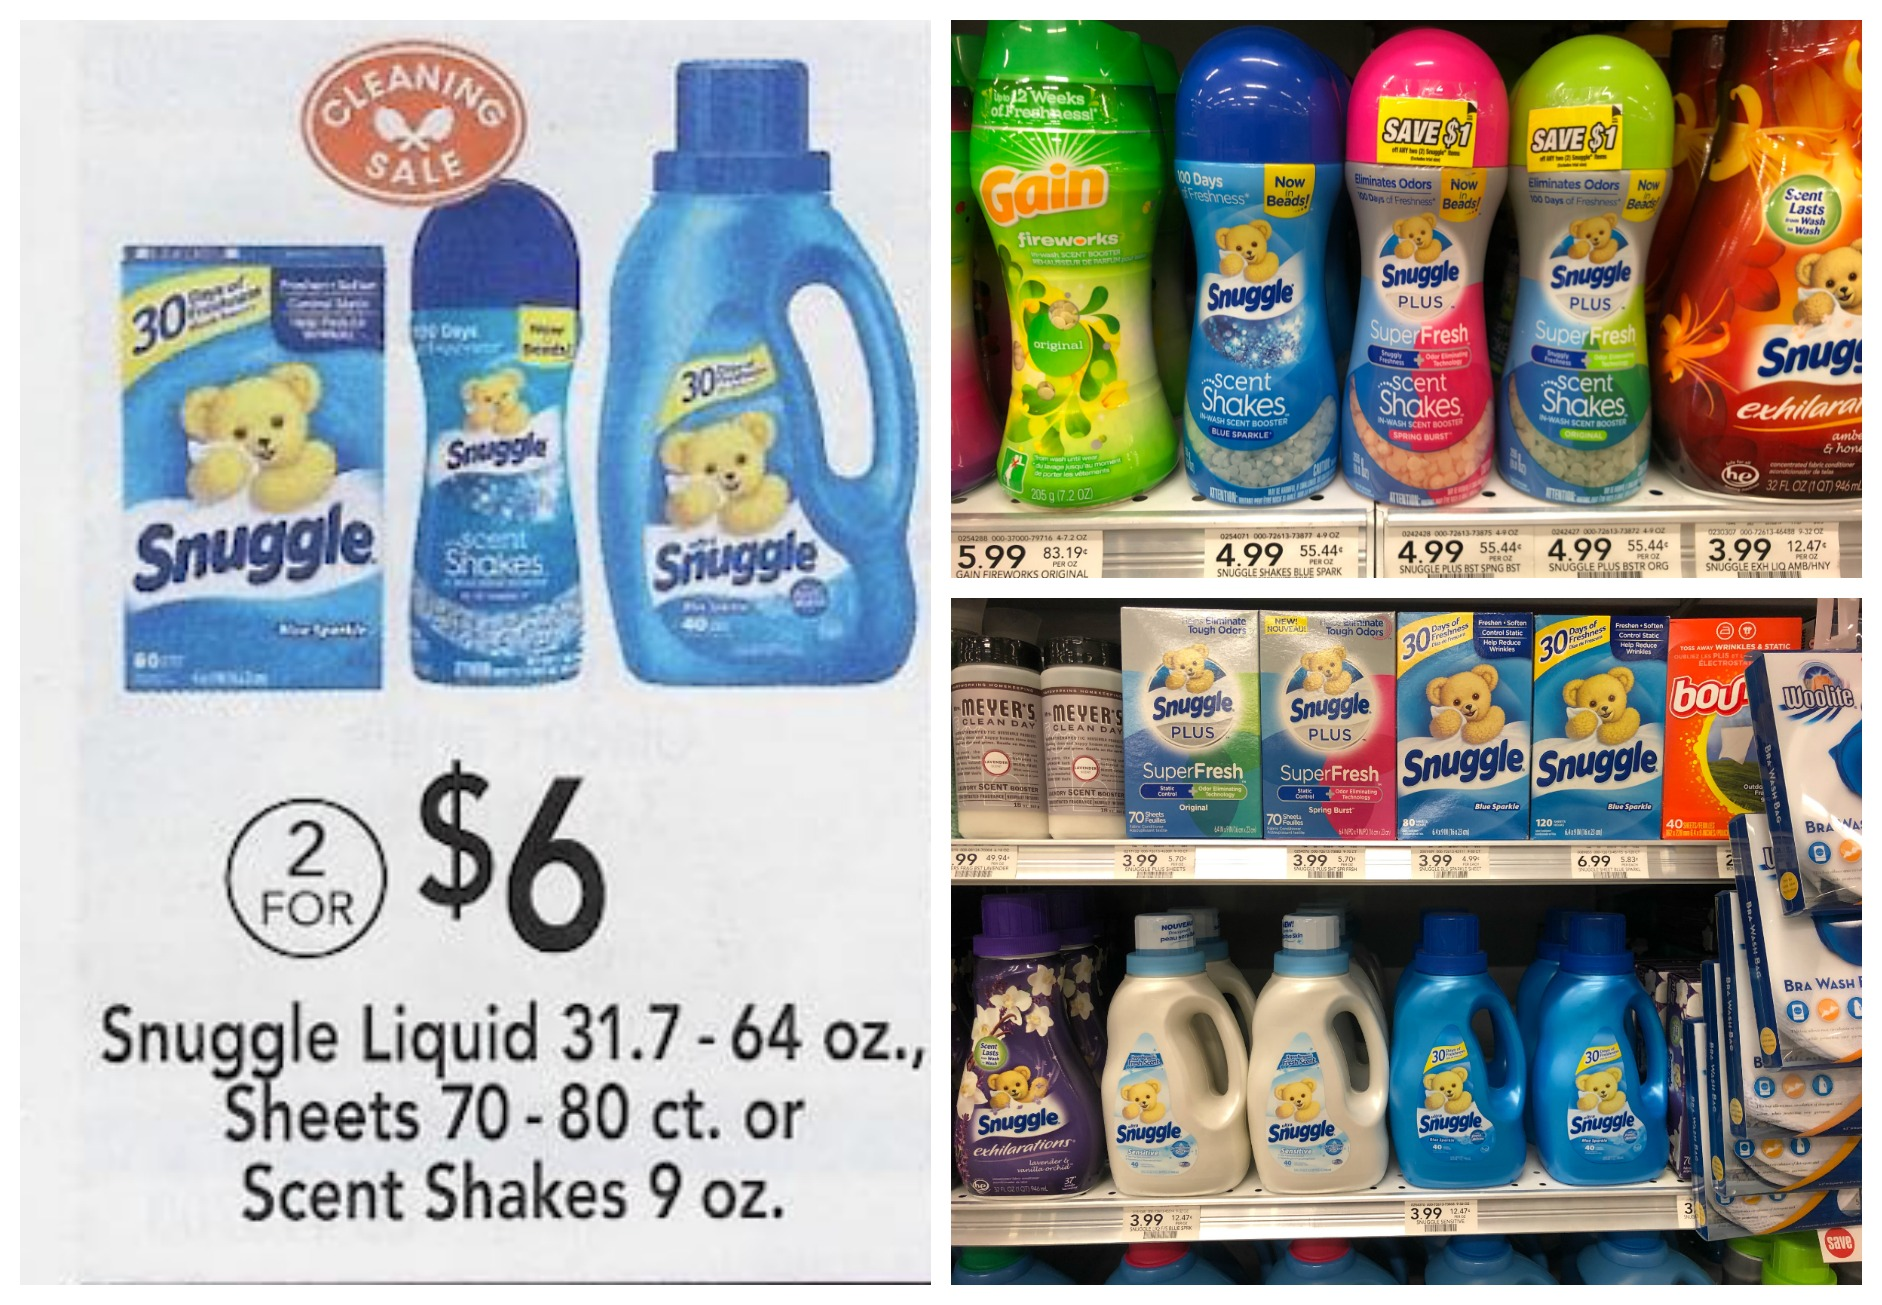 Snuggle Products Just $1.50 At Publix on I Heart Publix